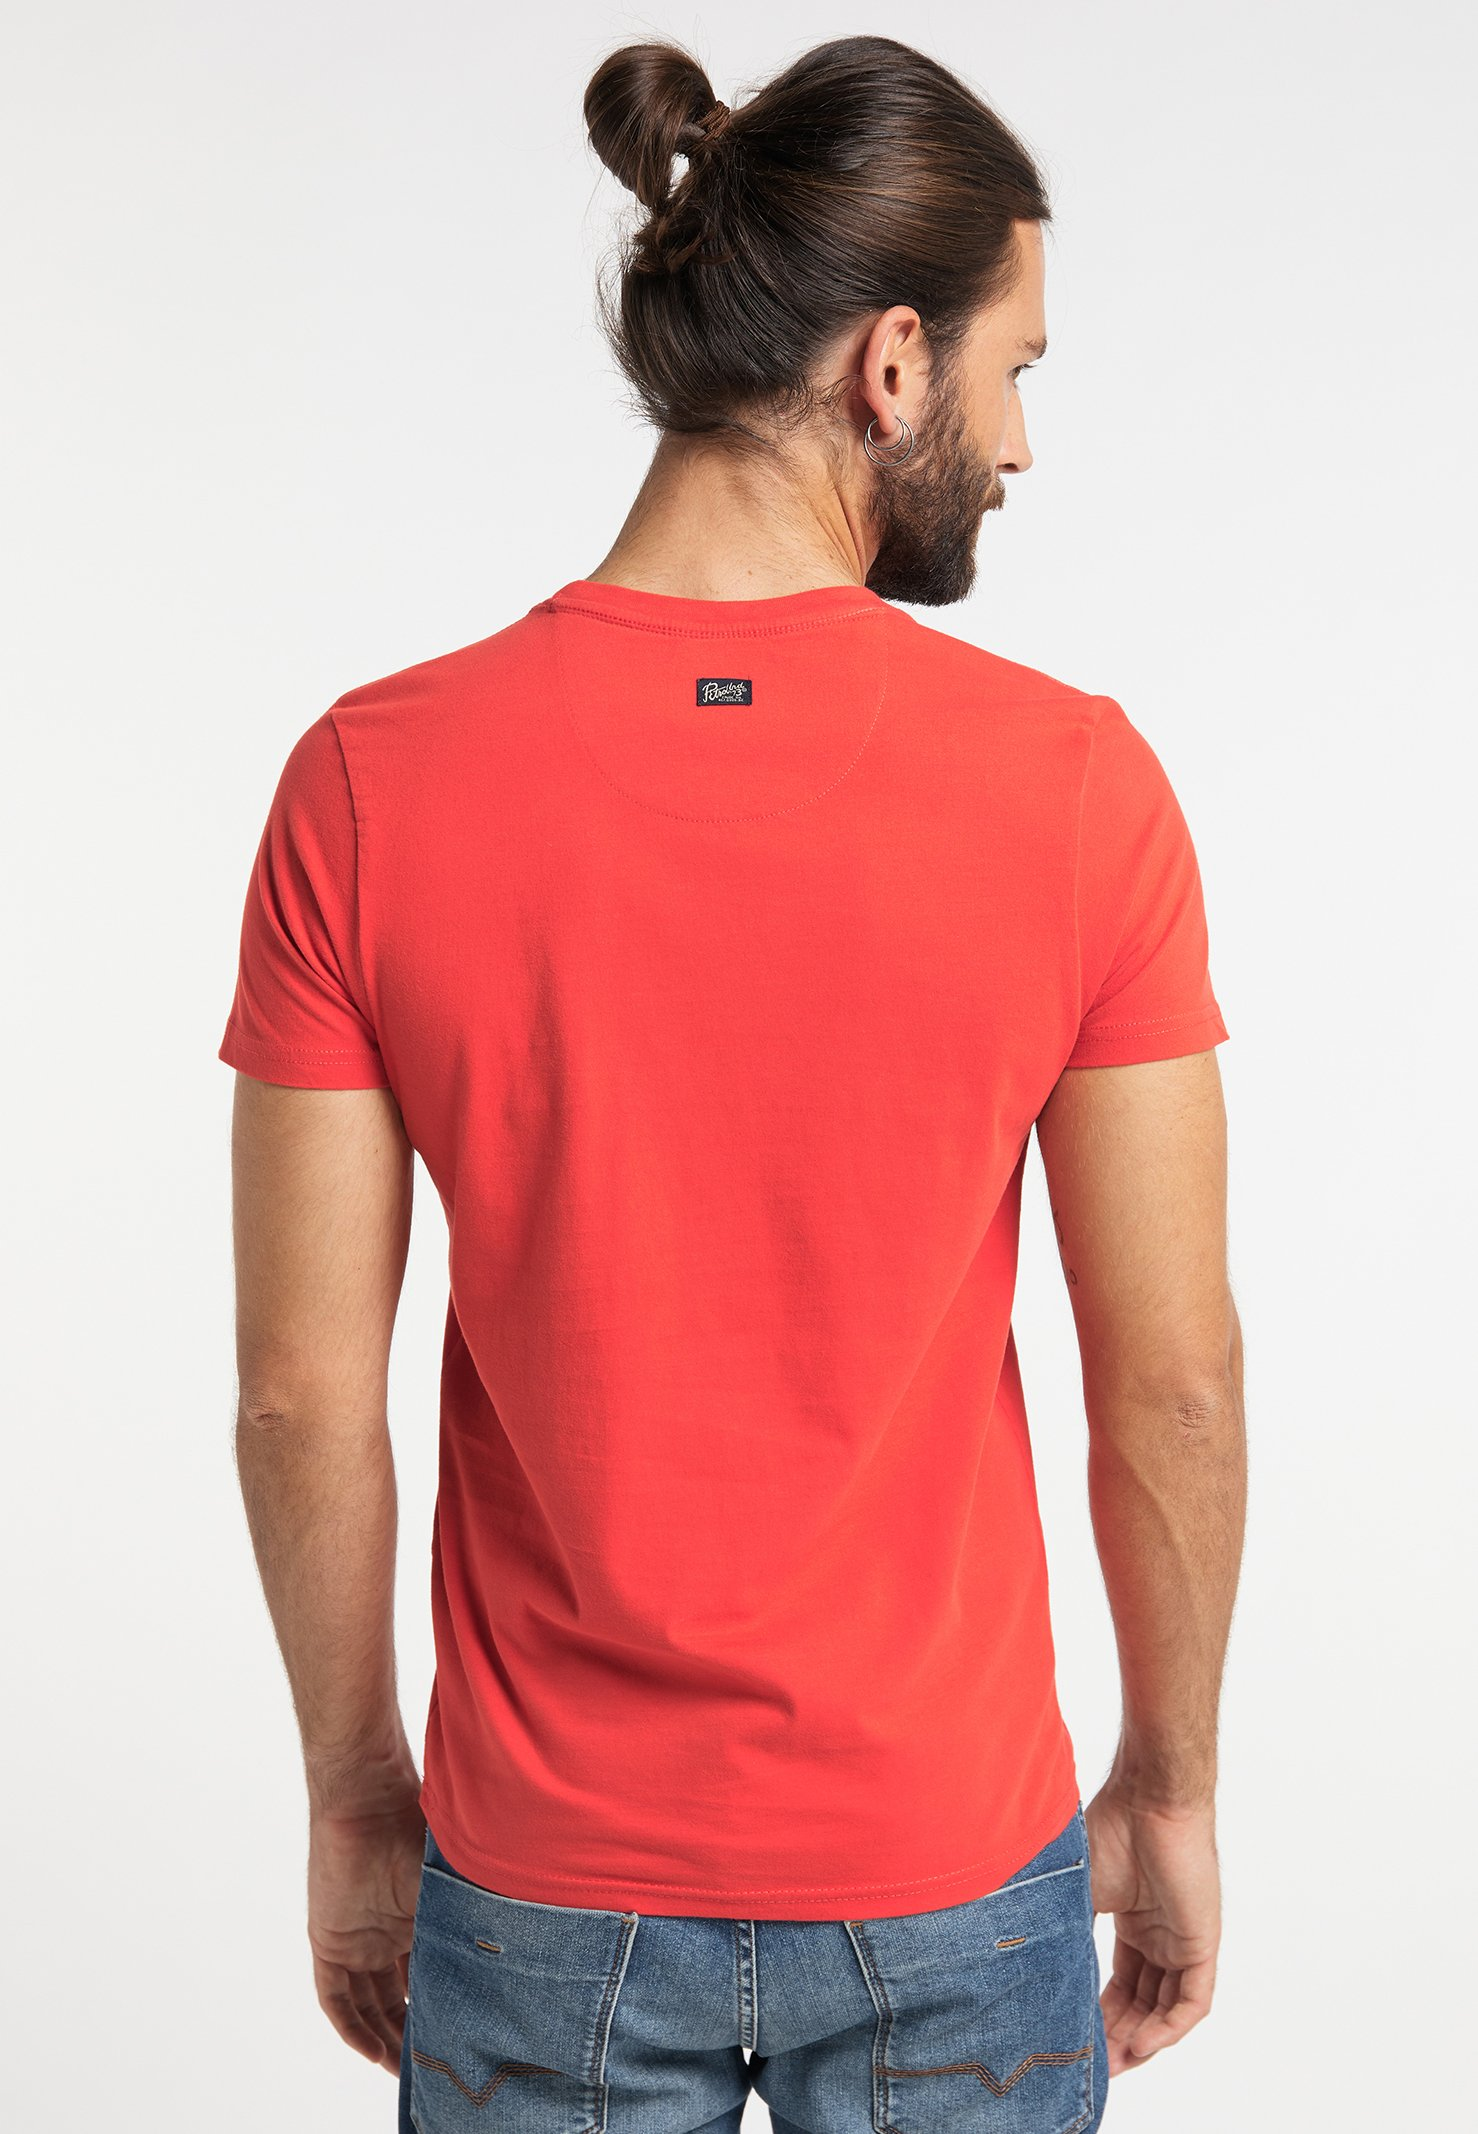 Stampa Red T Petrol Industries Con shirt nwP0XN8Ok